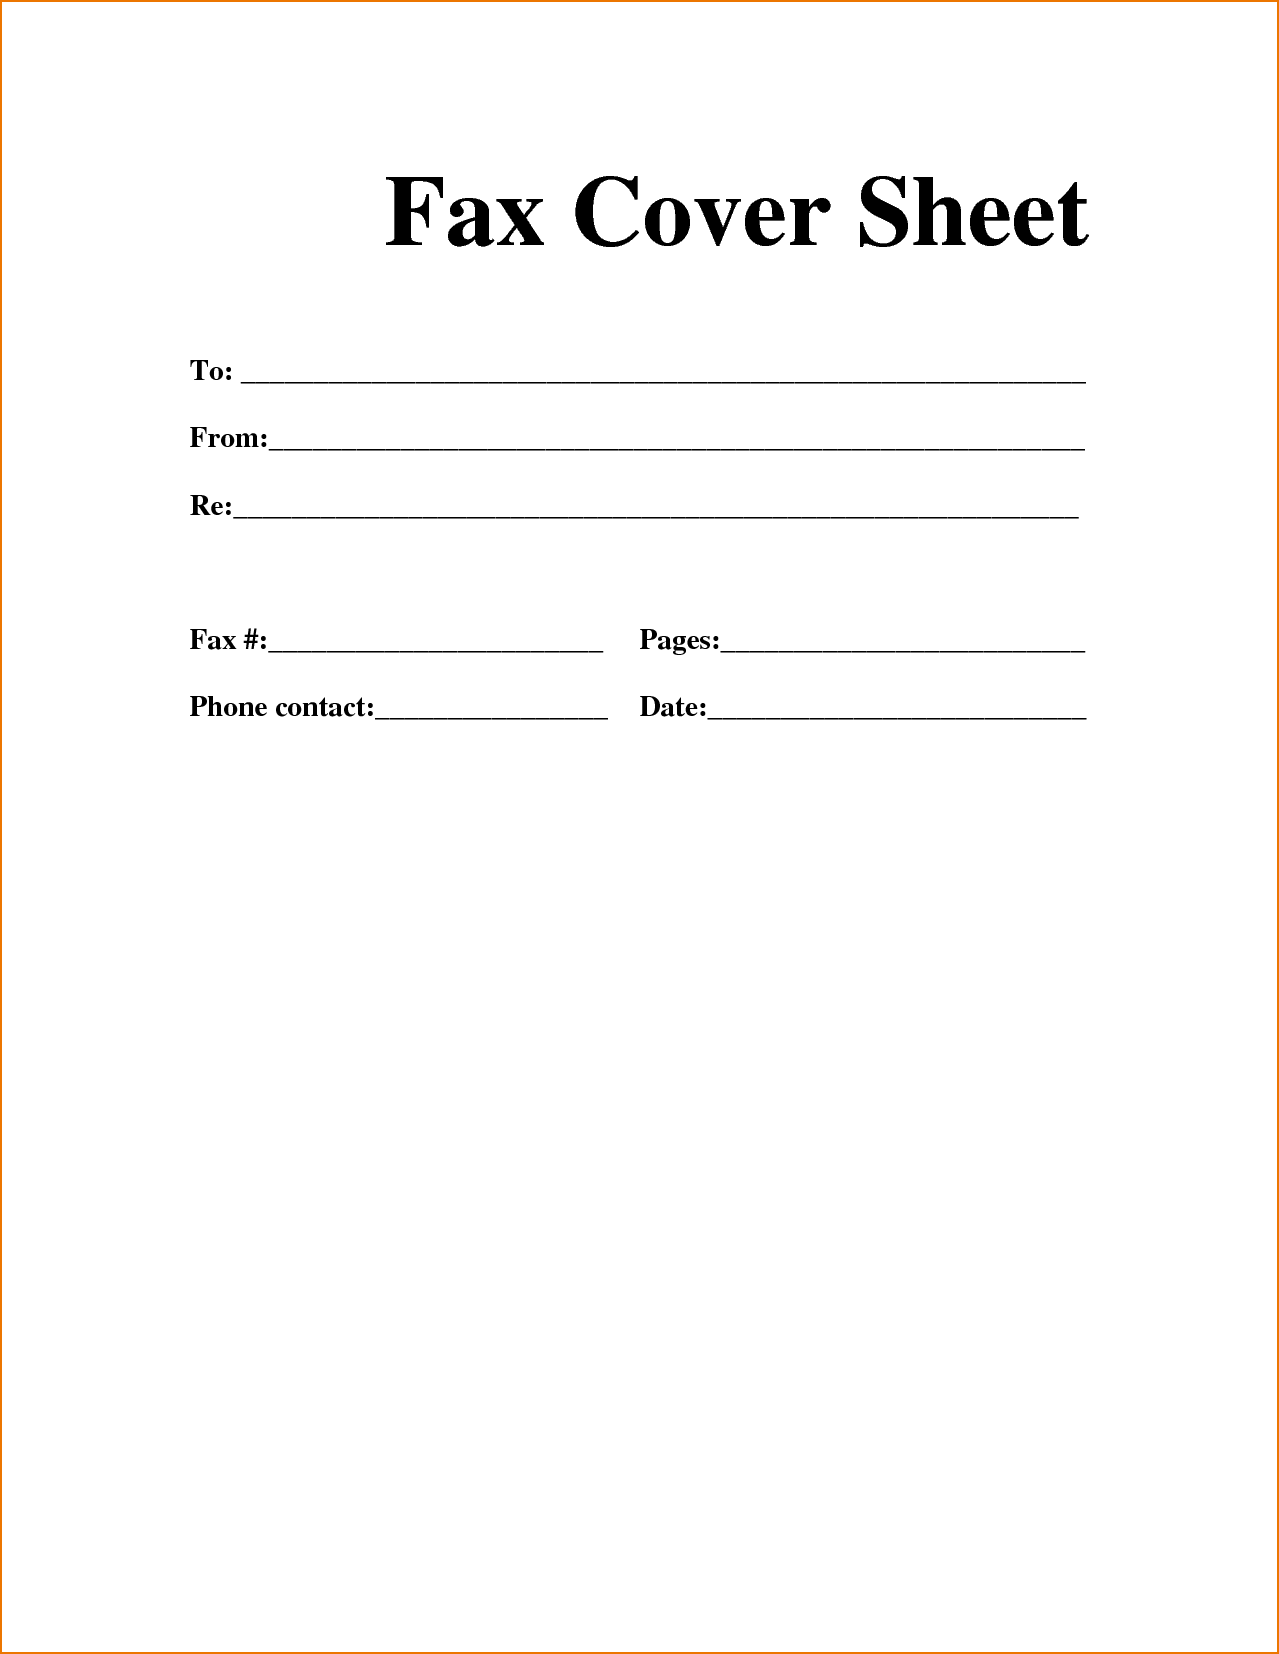 Confidential Medical Fax Cover Sheet Printablefax Blank Page ...